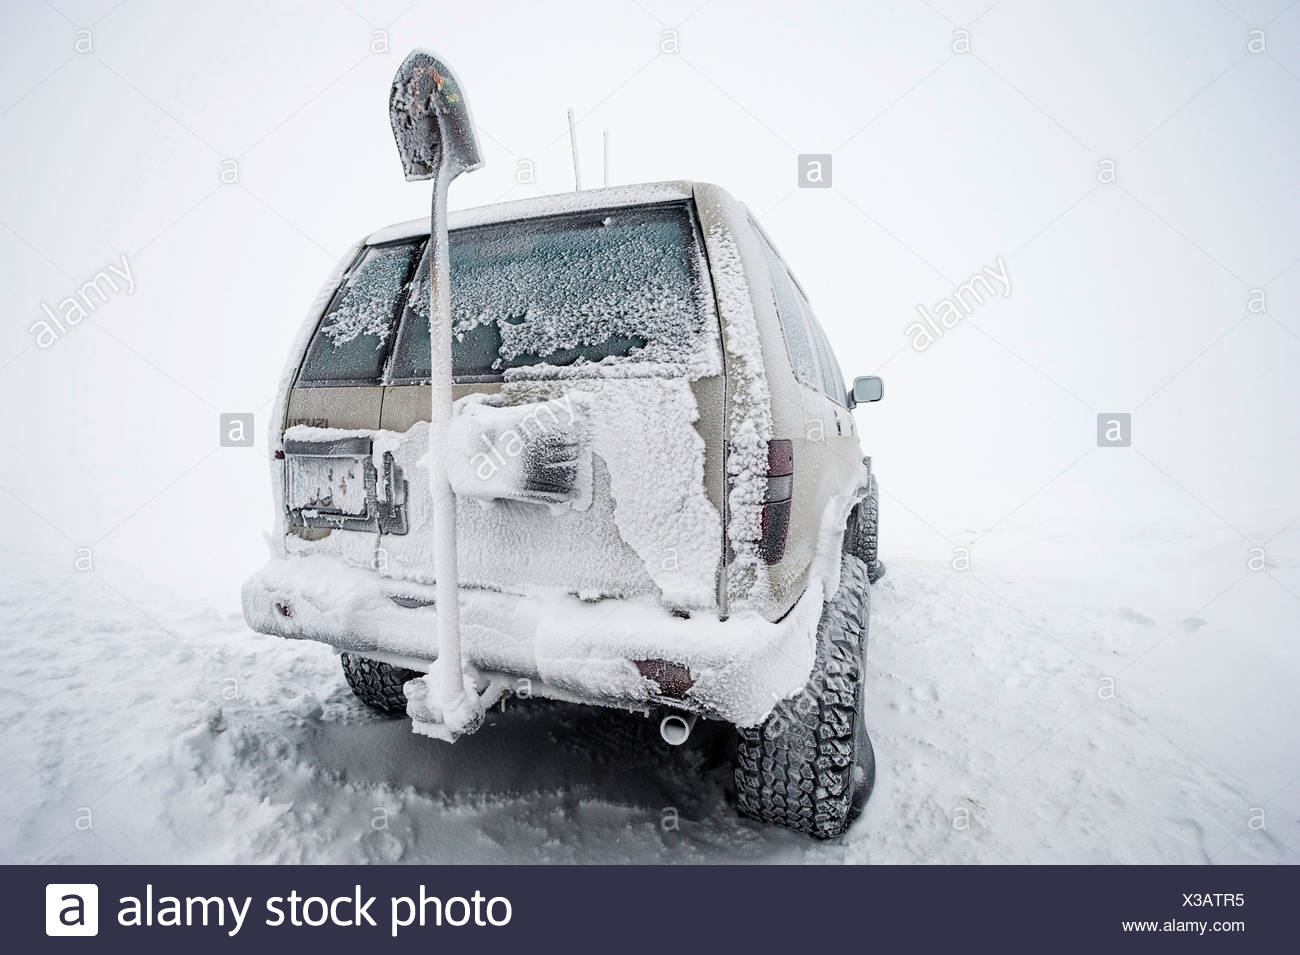 Frozen Super Jeep with a shovel, Iceland, Europe - Stock Image